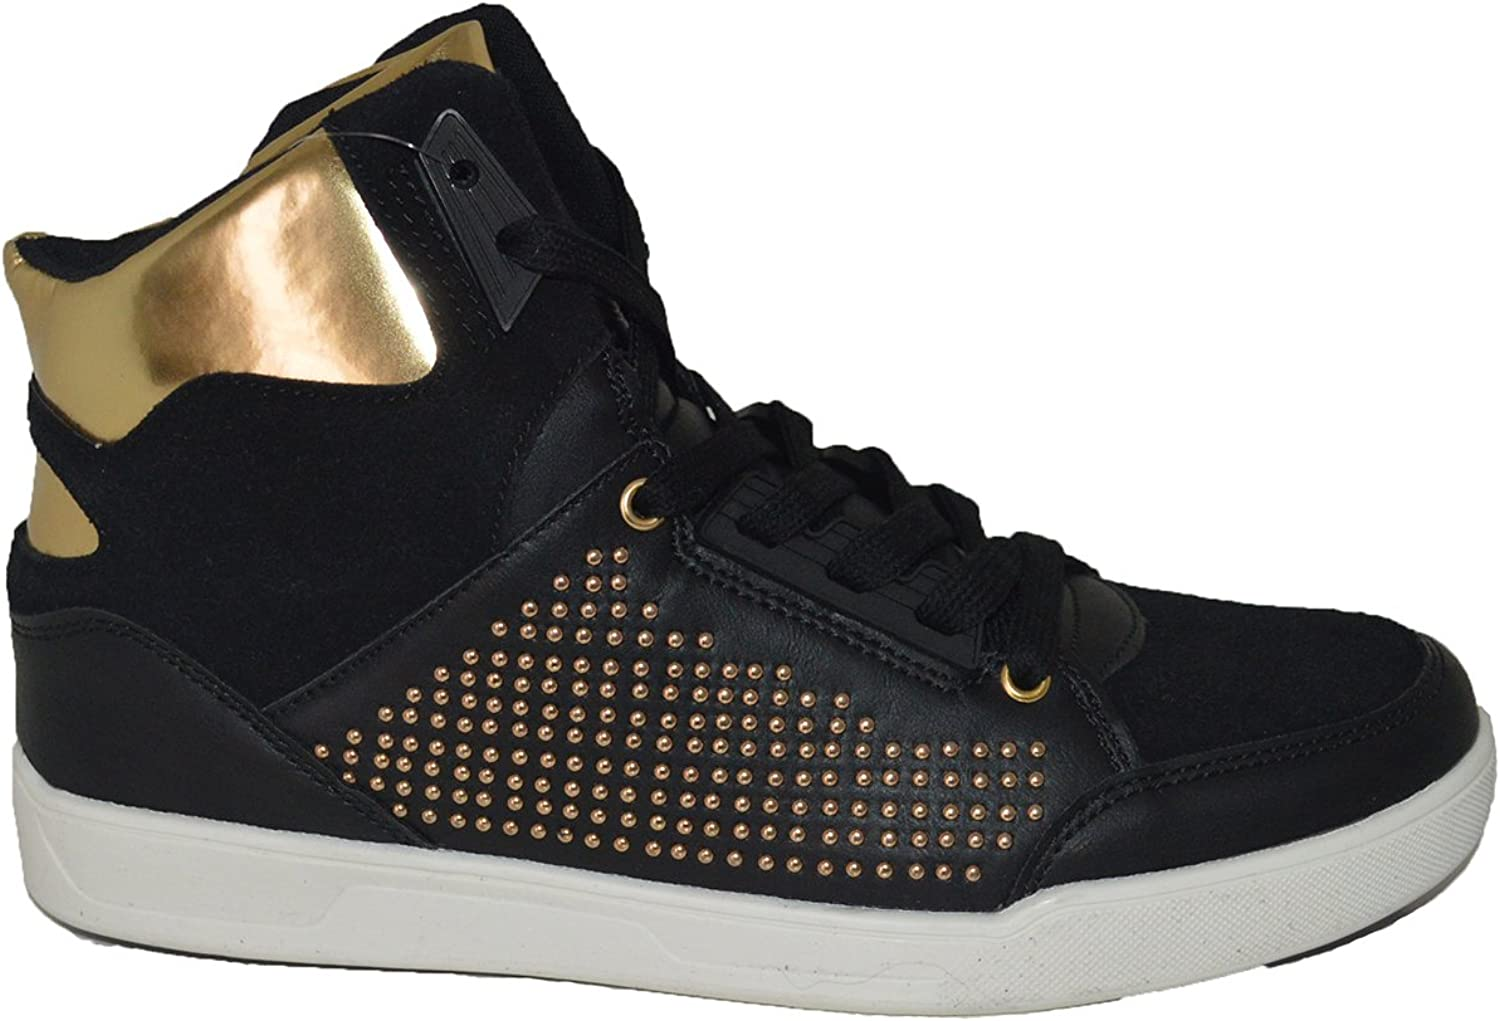 Mecca ME-8060 EAN Men's Mixed Media Studded Lace Up High Top Sneakers.